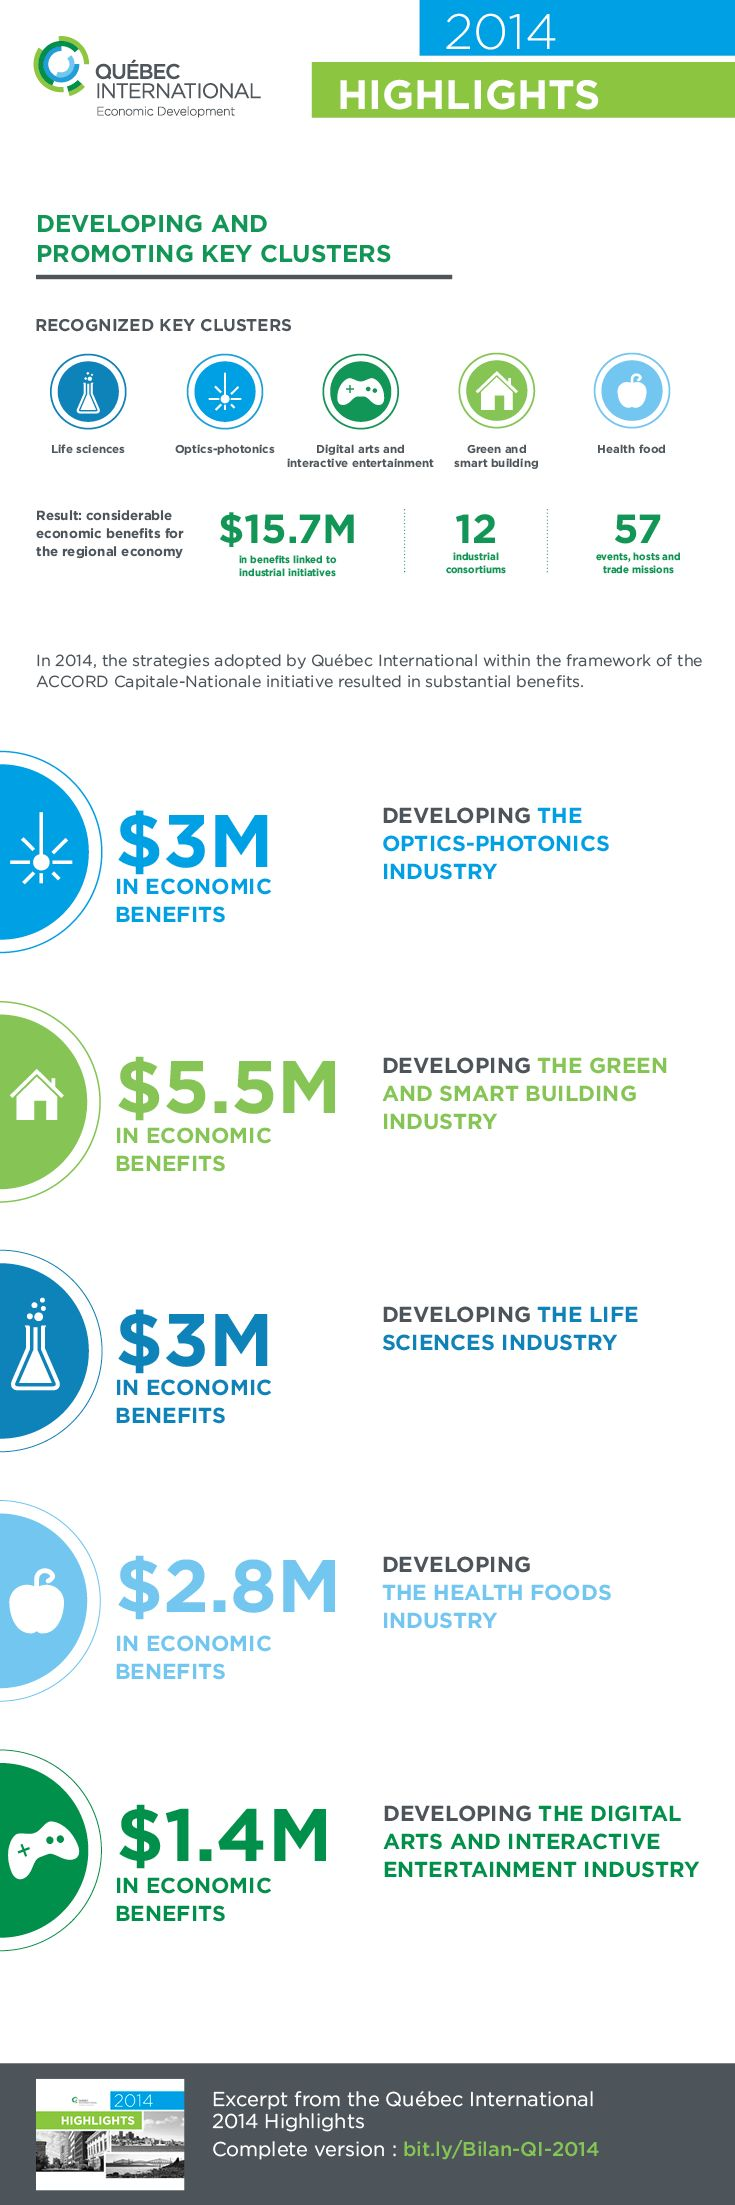 Québec International promotes the development of 5 key regional clusters. Our experts work hard to develop promising initiatives for each of these industries. #quebecintl #economy #infography